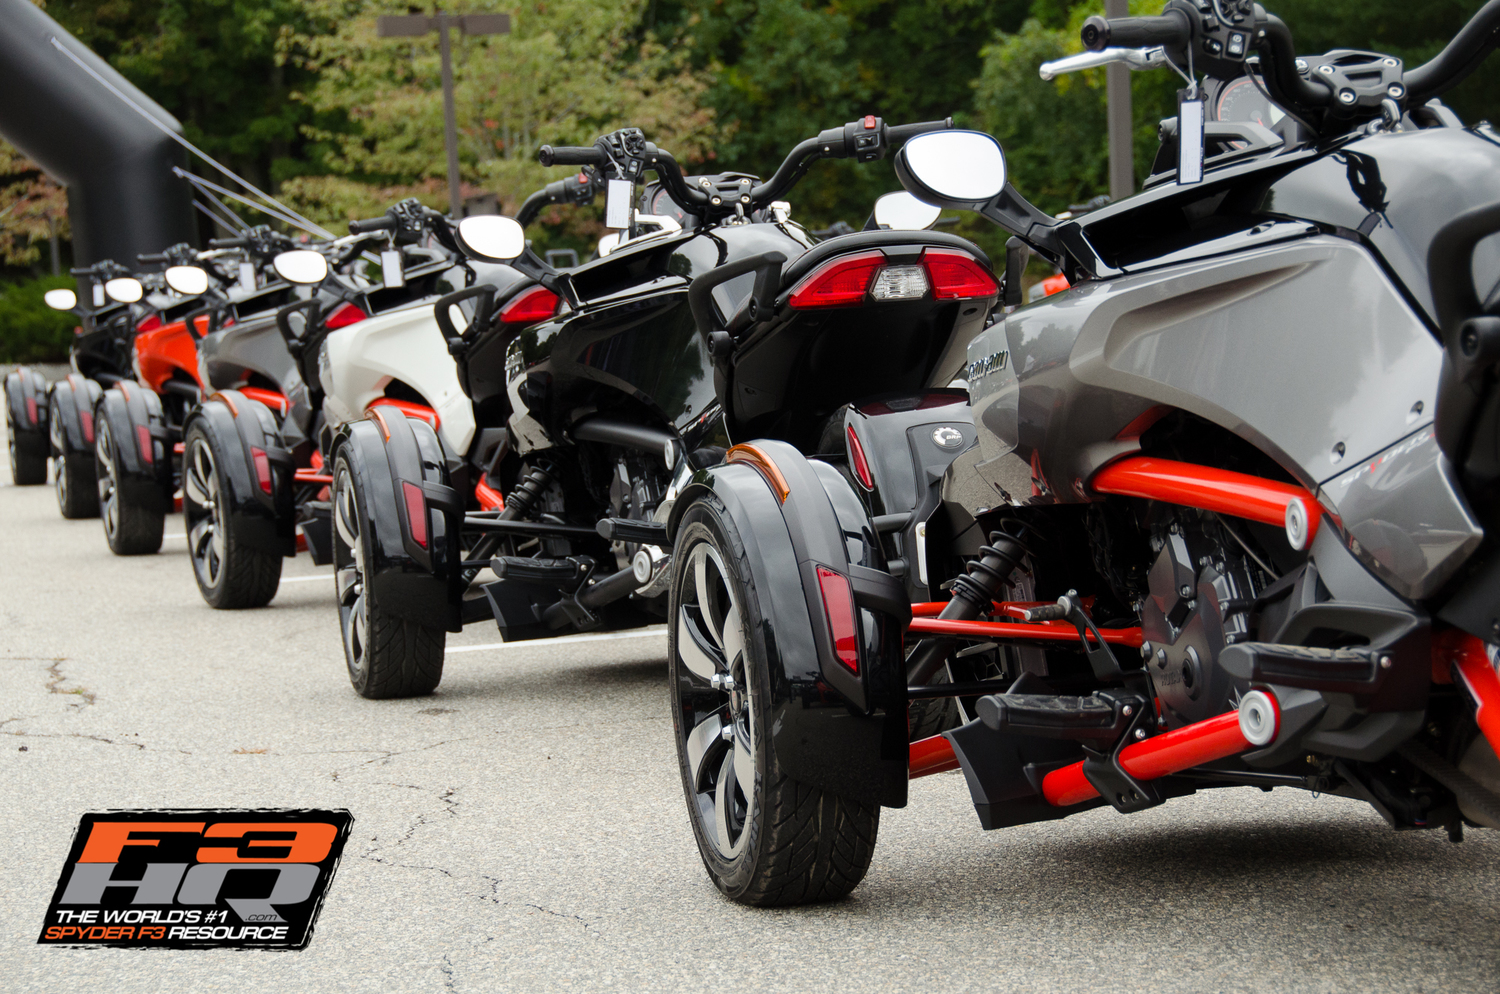 2014 Can-Am Spyder F3 - Product Launch and Ryde-17-10.jpg